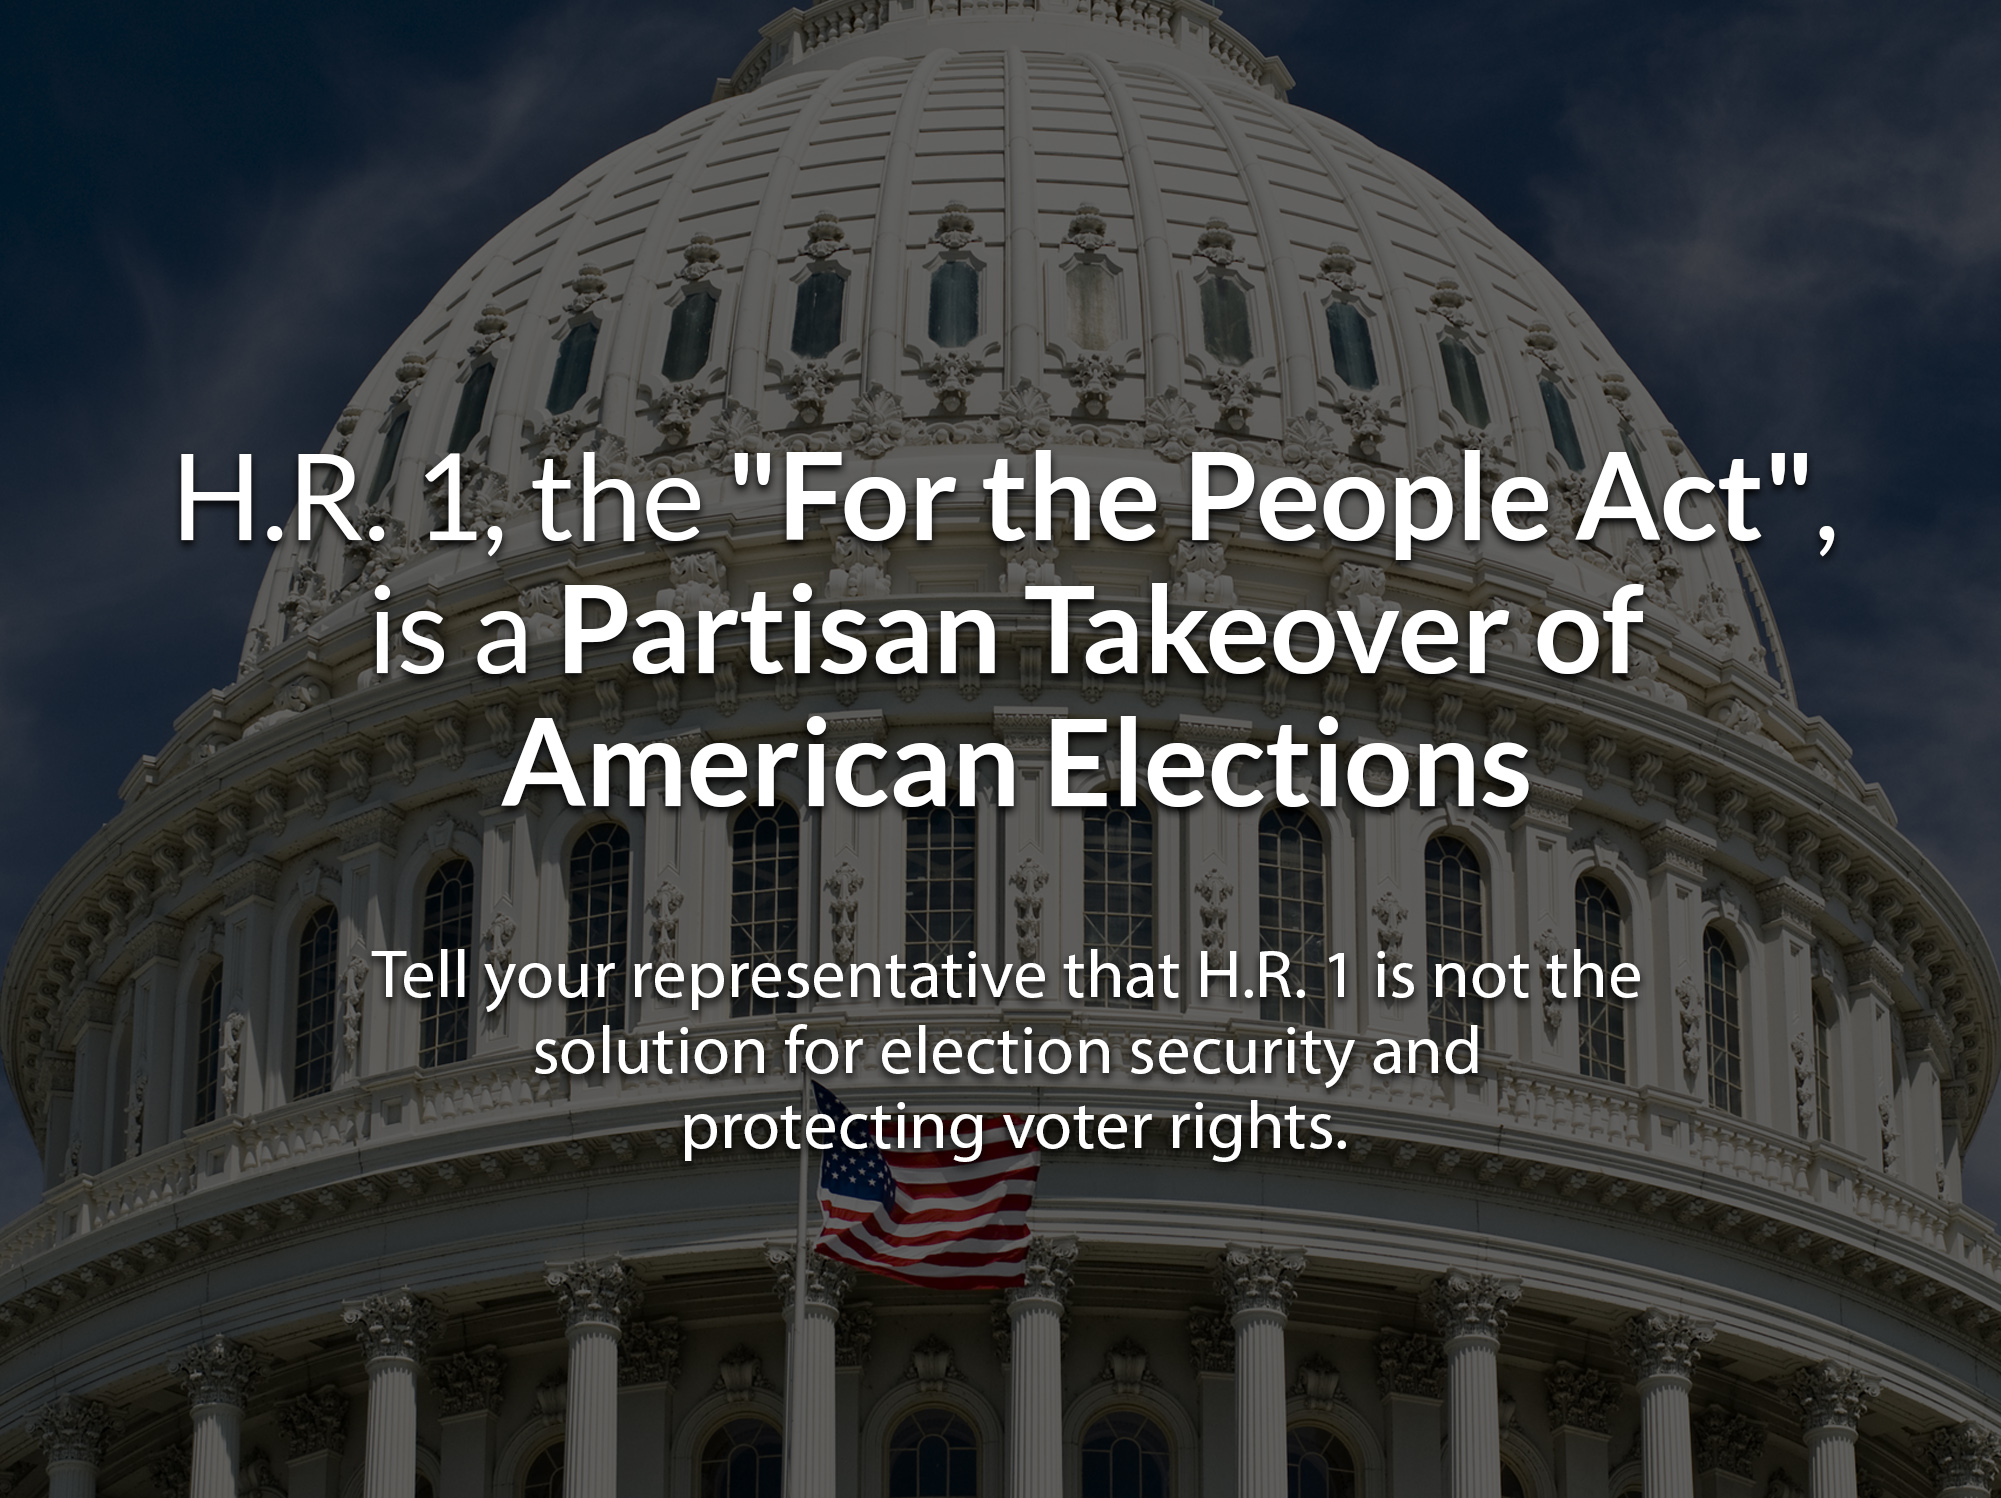 AMAC Opposes The Deceptive For the People Act of 2021 - AMAC - The  Association of Mature American Citizens